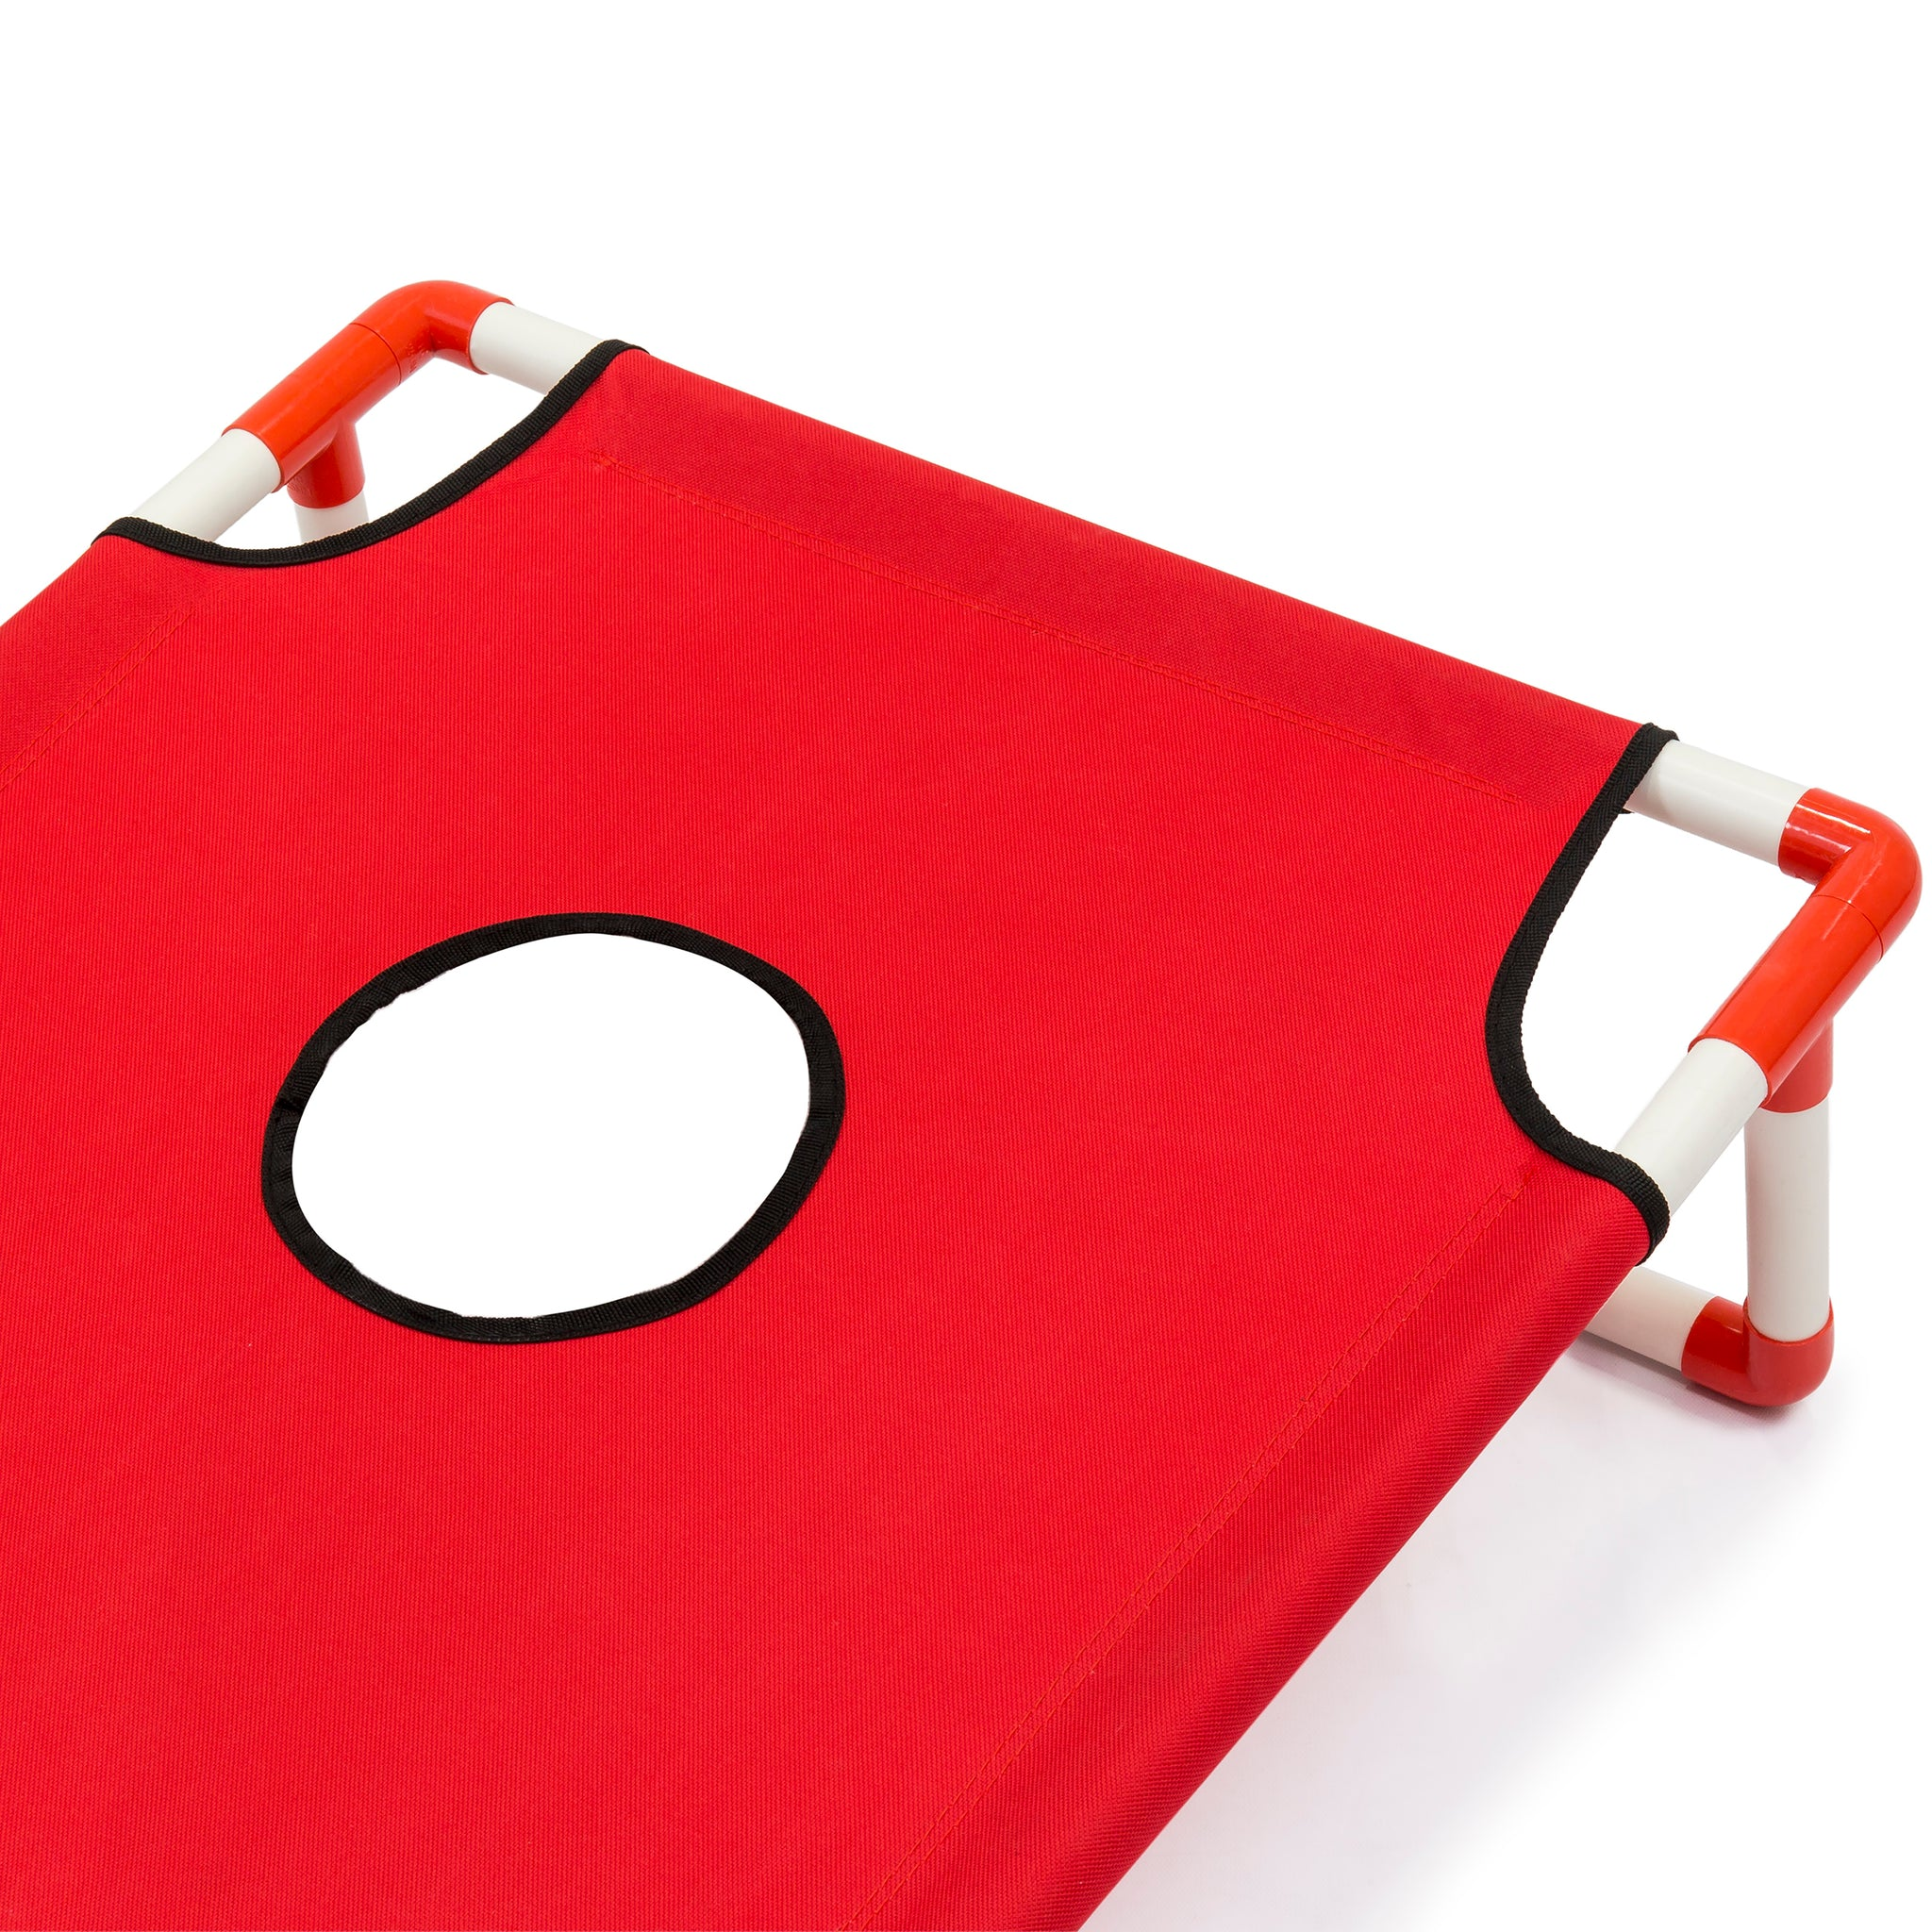 Portable Cornhole Set W/ Carrying Case   Red/Blue